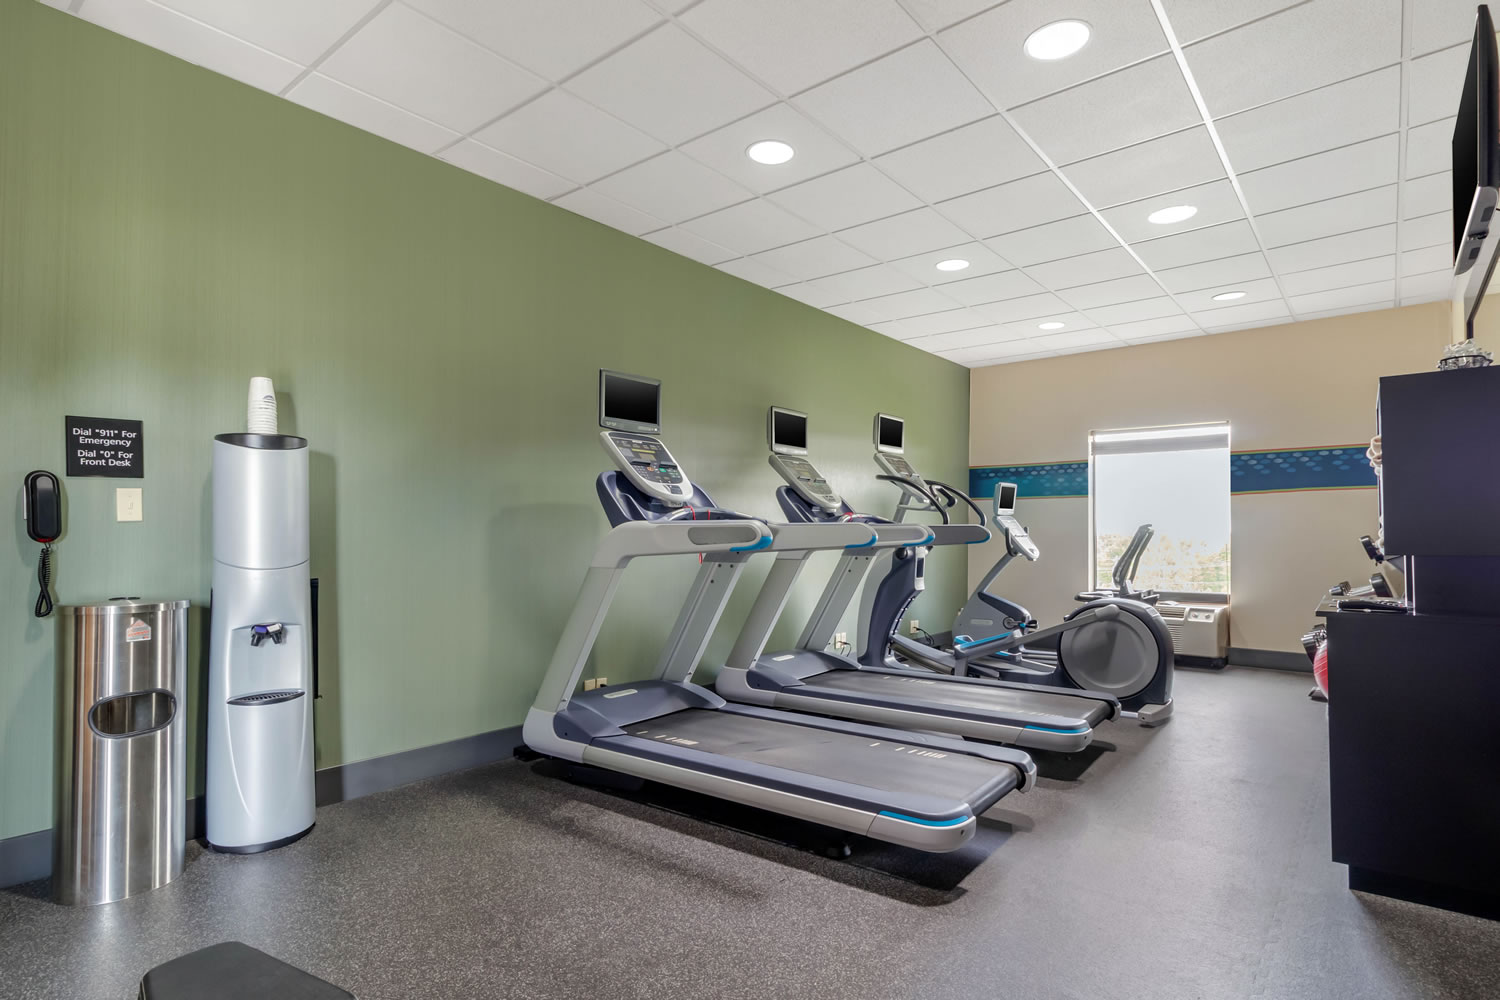 Hampton Inn Fitness Center